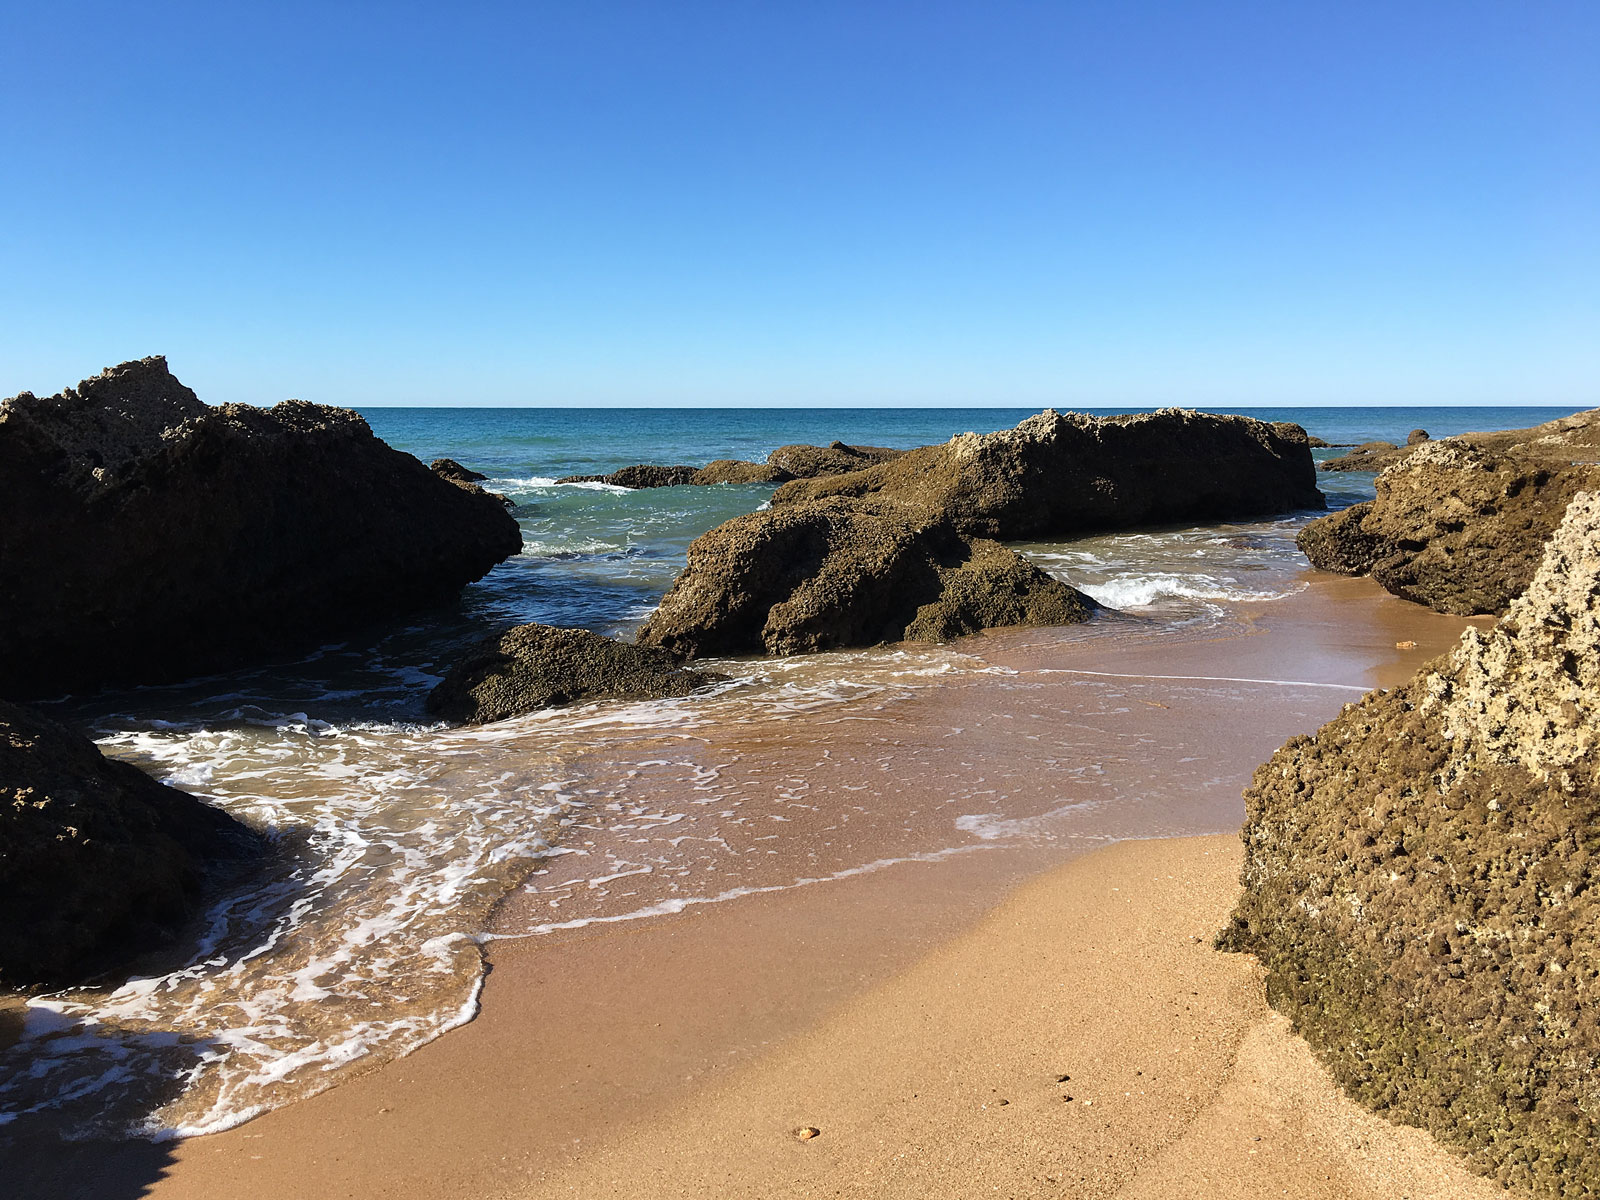 Costa de la Luz in Spain